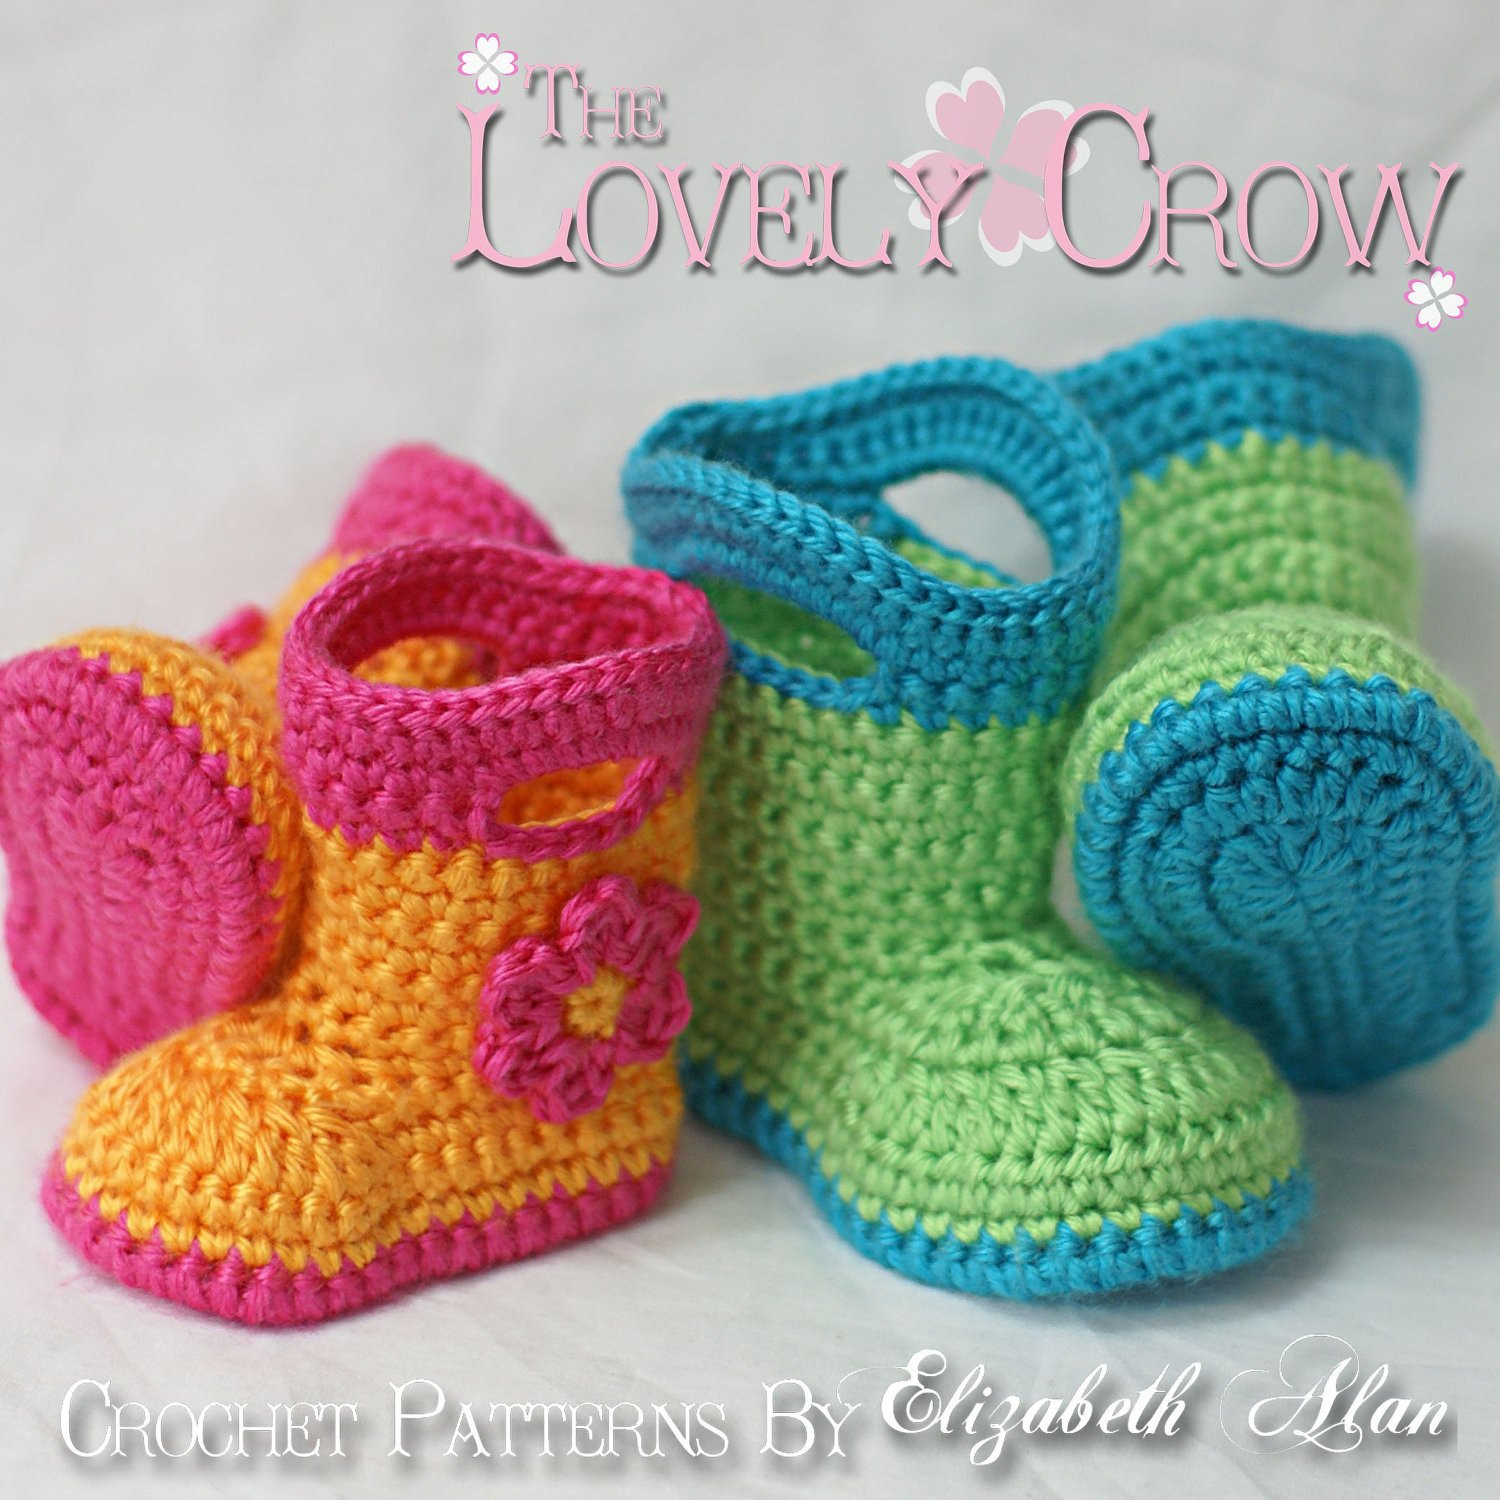 Newborn Crochet Patterns Fresh Rainboots Crochet Pattern Baby Rainboots for Baby Goshalosh Of Incredible 41 Ideas Newborn Crochet Patterns